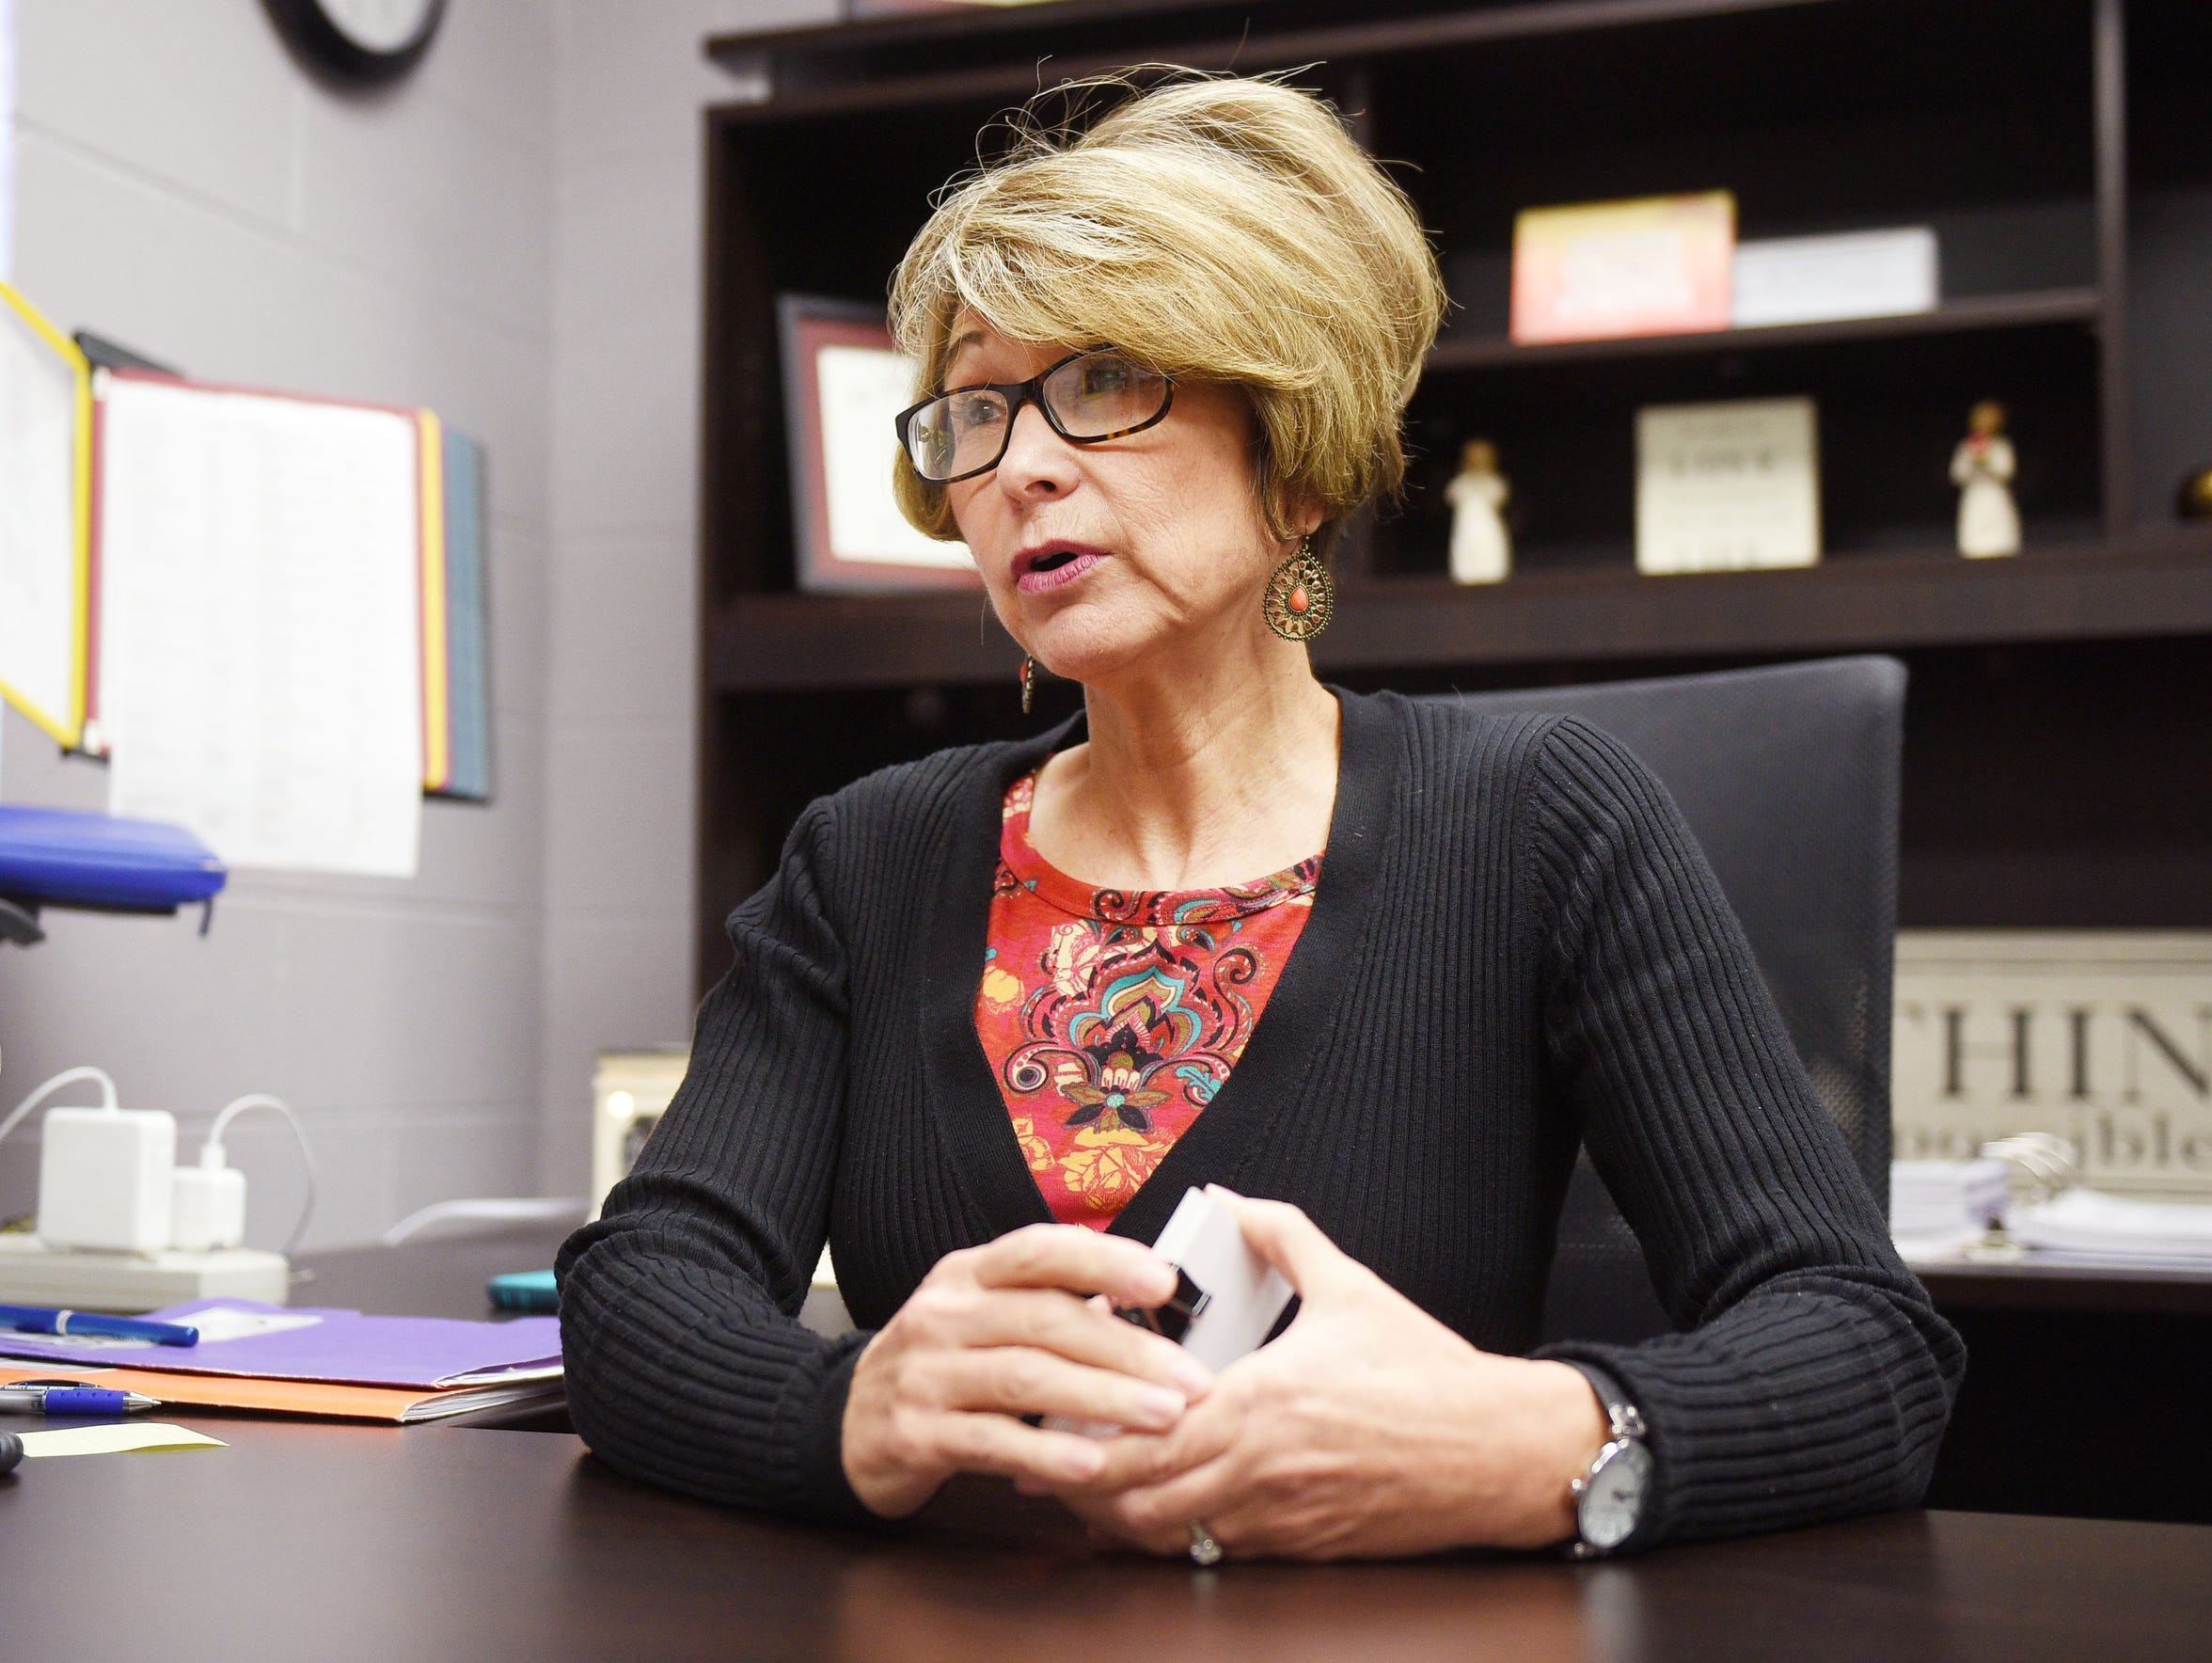 Todd County schools superintendent Karen Whitney talks